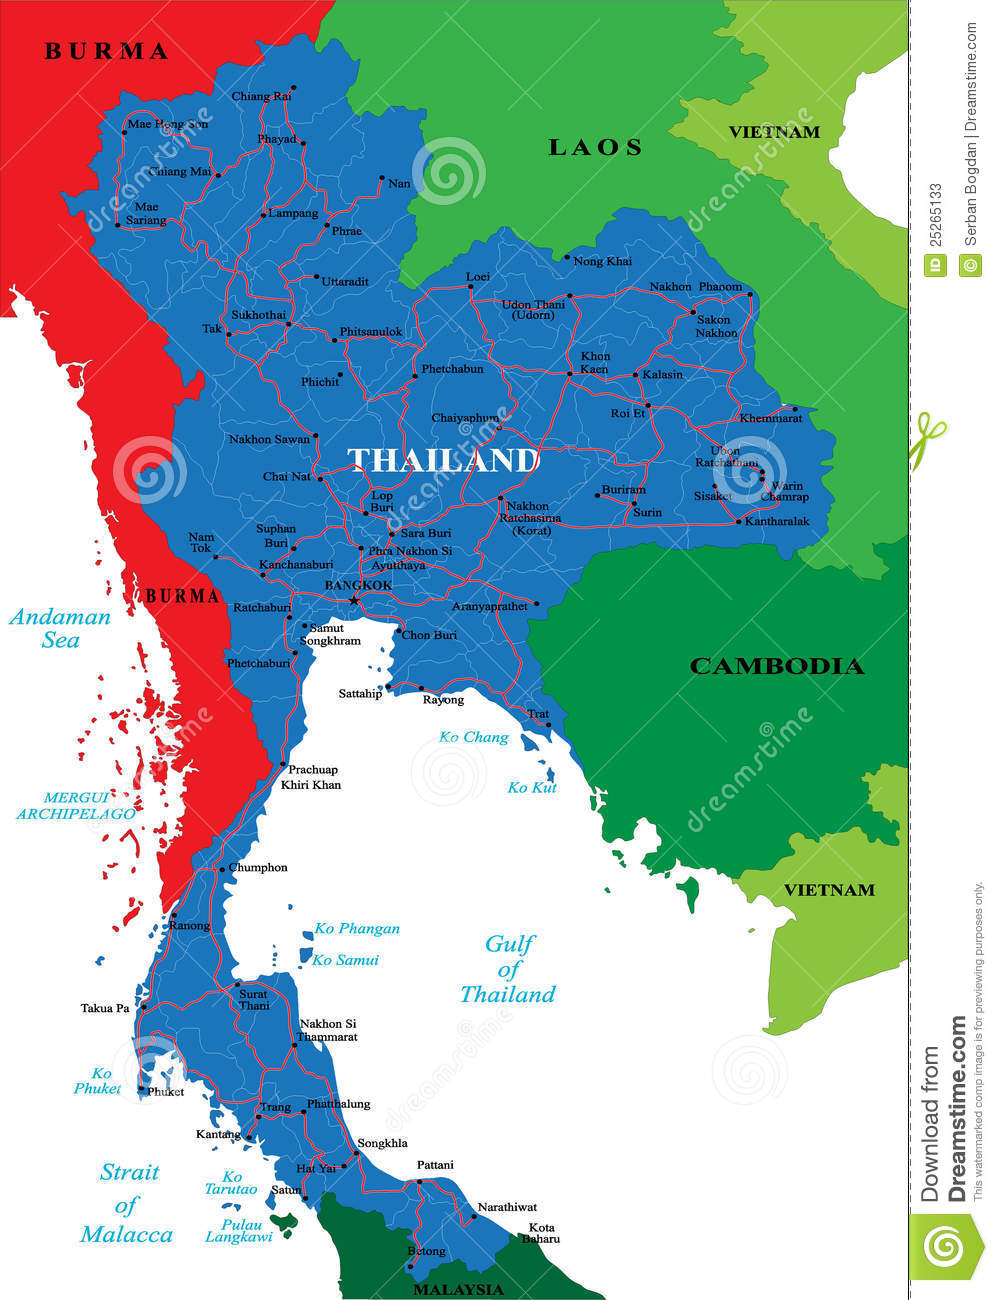 Carte Thailande Detaillee.Carte De La Thailande Illustration De Vecteur Illustration